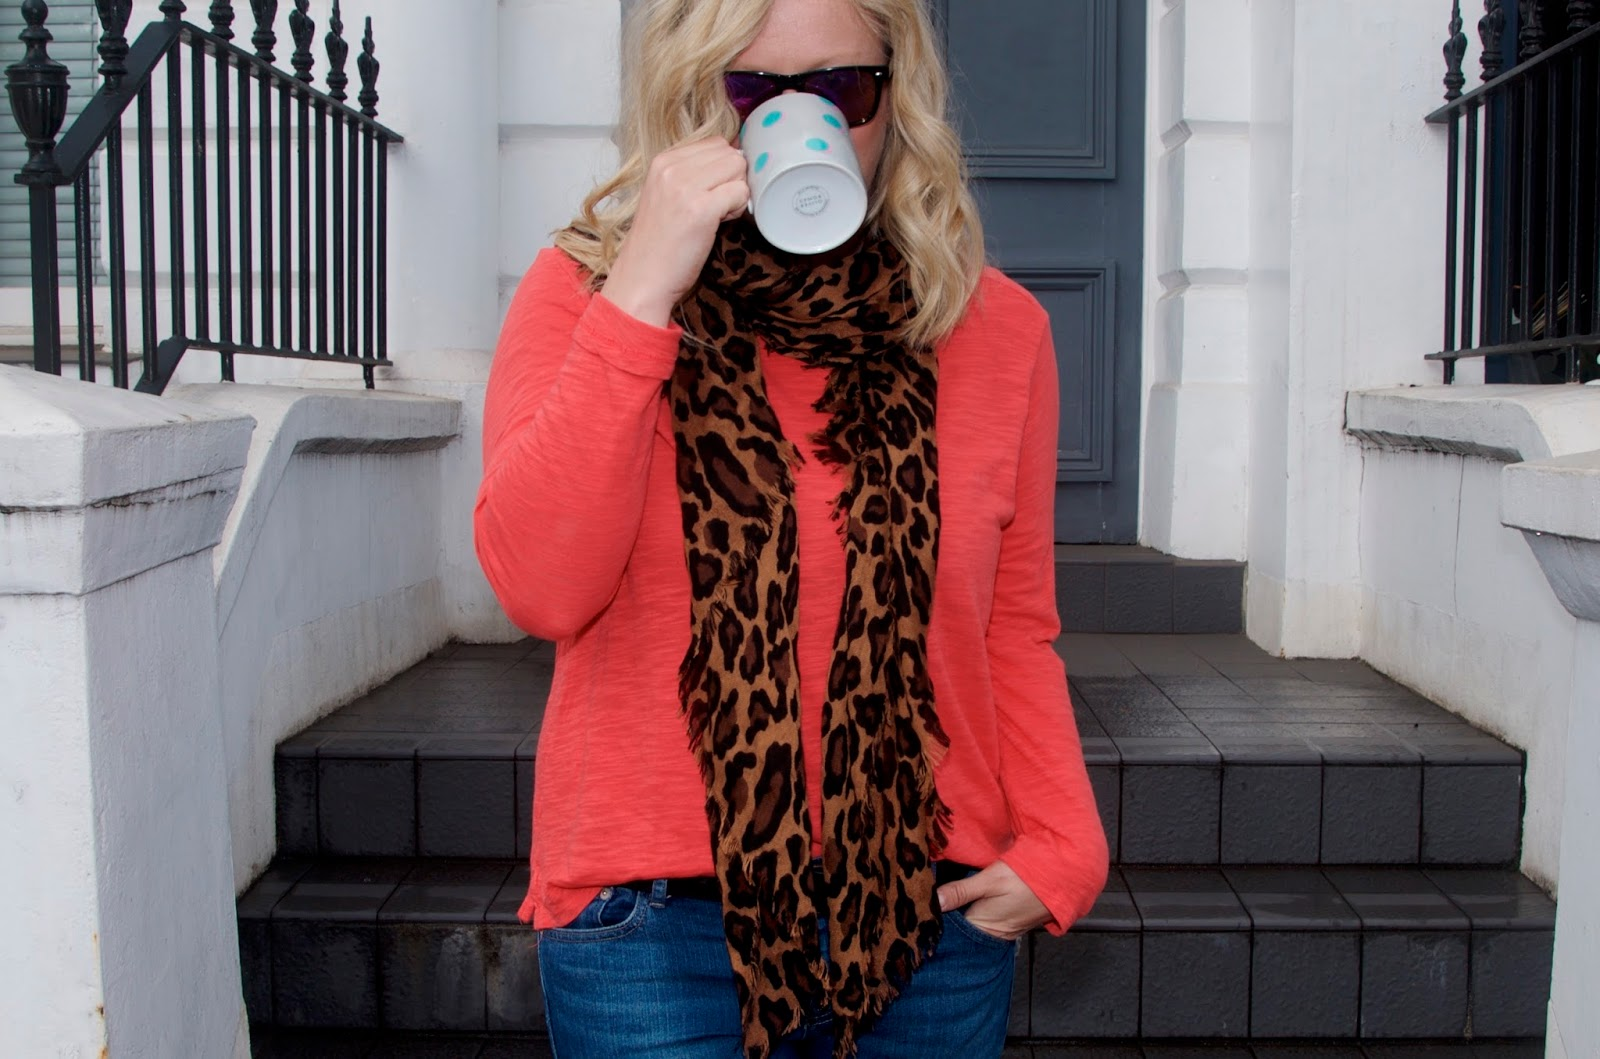 Leopard Print Scarf, Orange long sleeve t-shirt and jeans